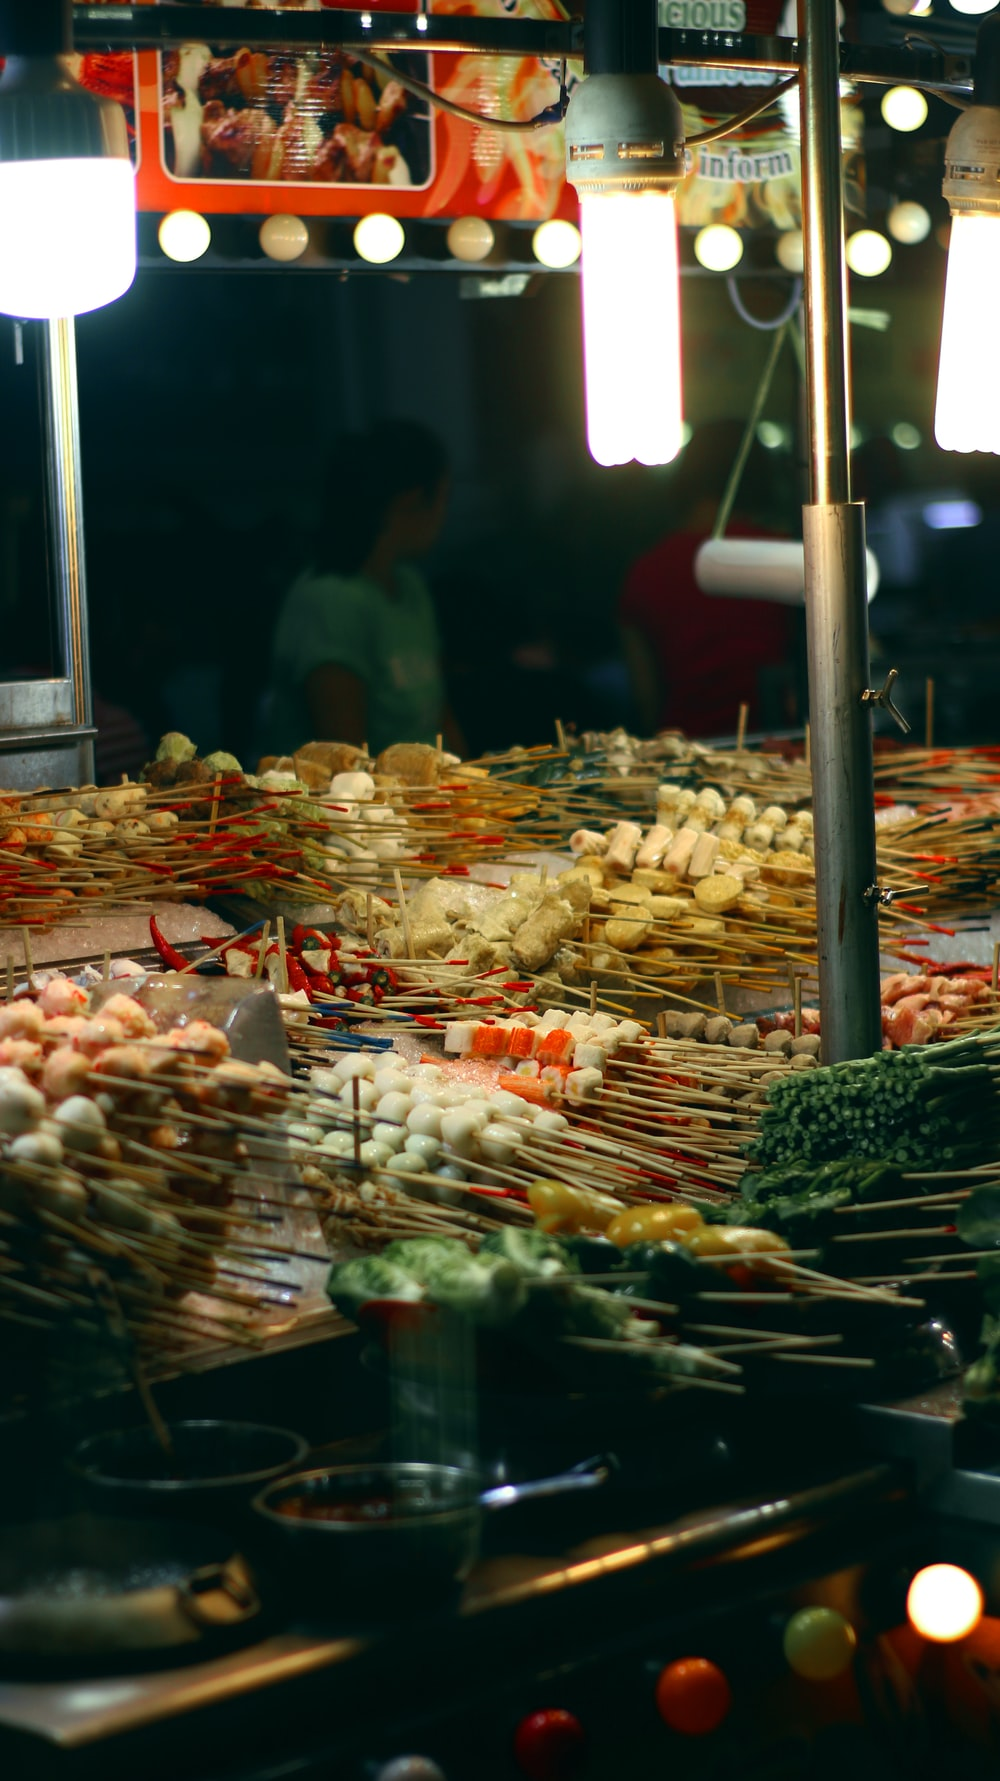 people standing near food stall during night time